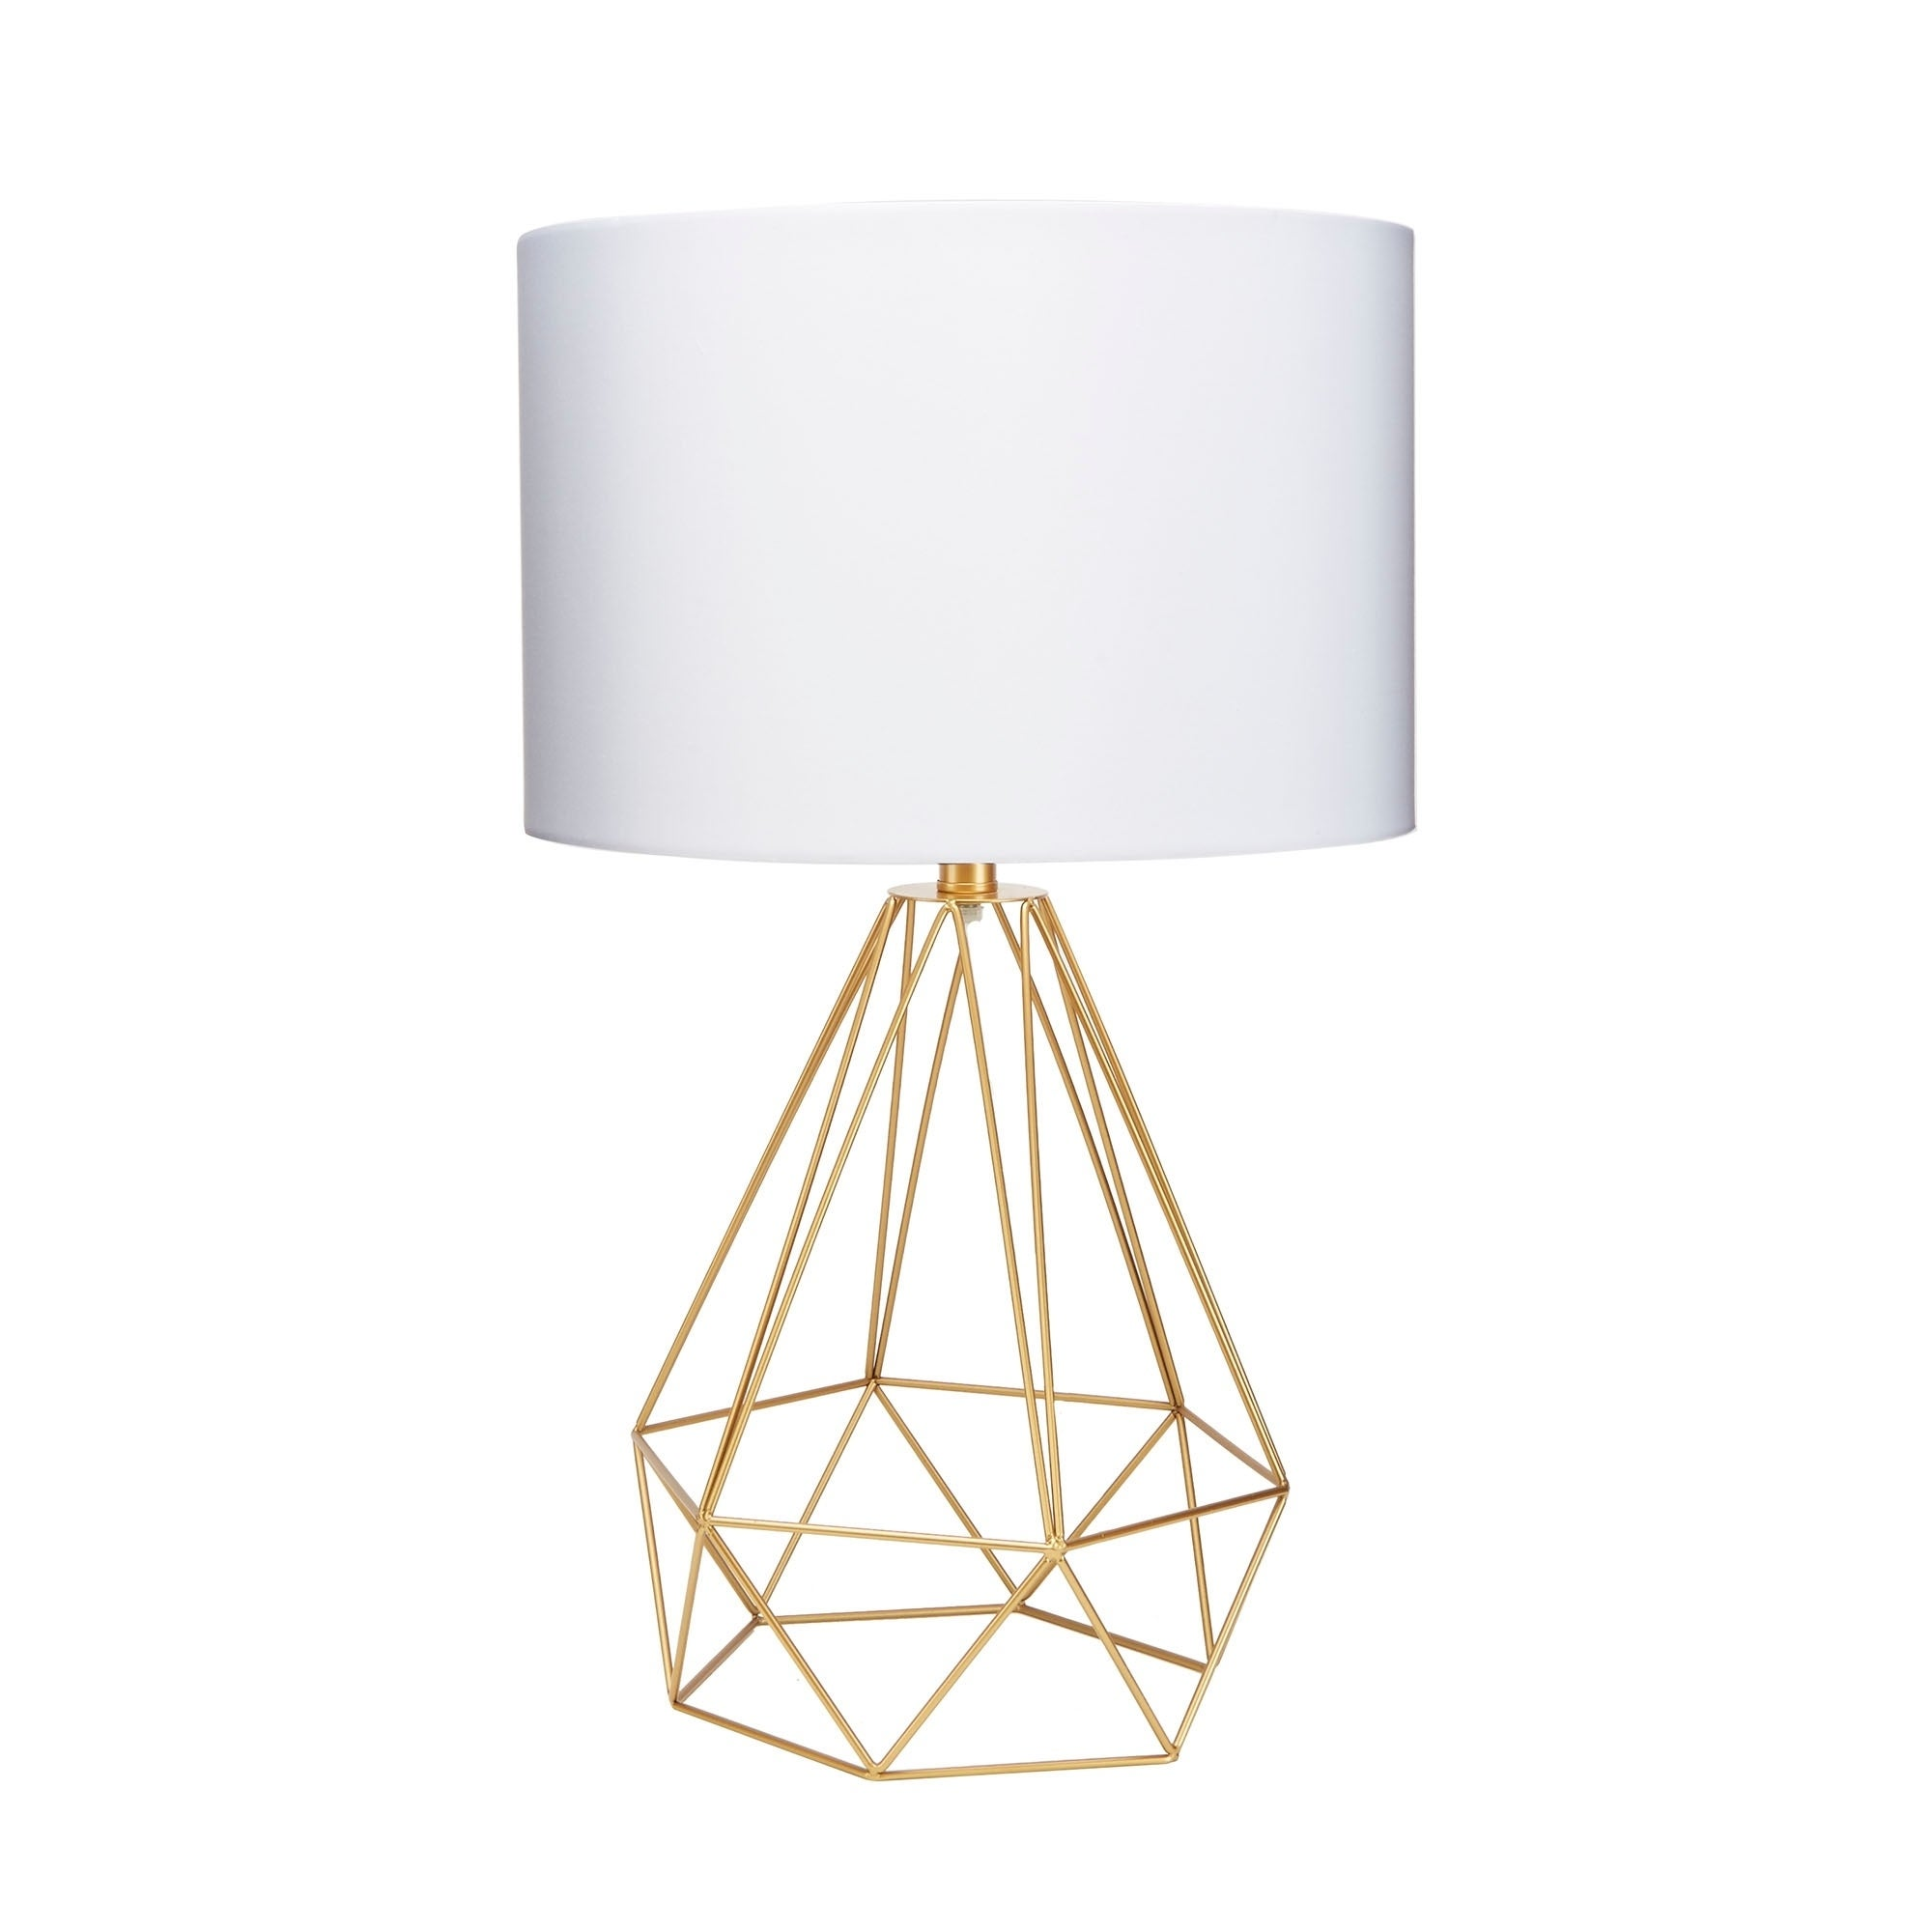 Shop celeste 26 wire prism table lamp gold free shipping today shop celeste 26 wire prism table lamp gold free shipping today overstock 20006947 keyboard keysfo Image collections